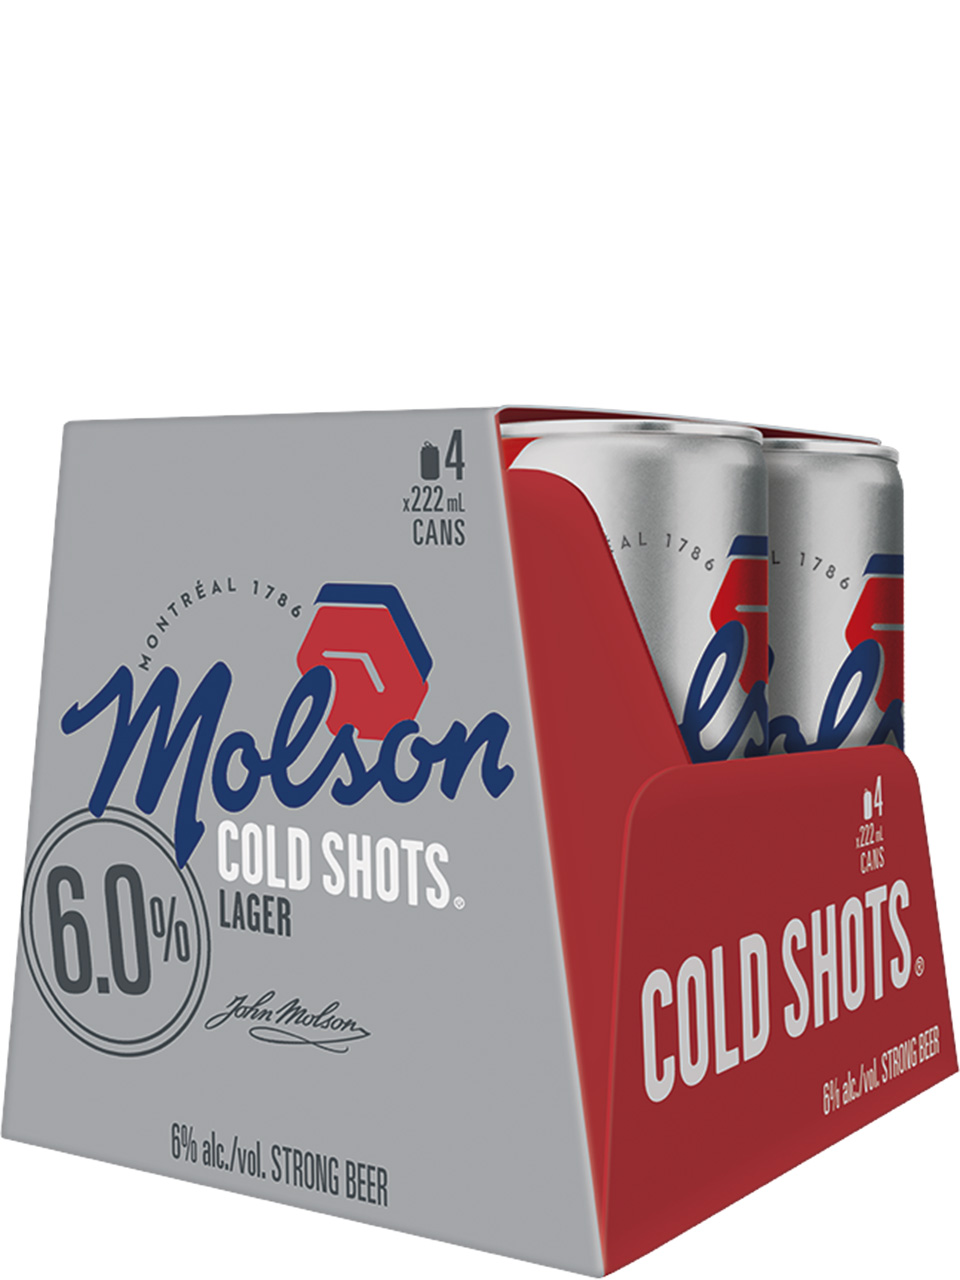 Molson Canadian Cold Shots 4 Pack Cans